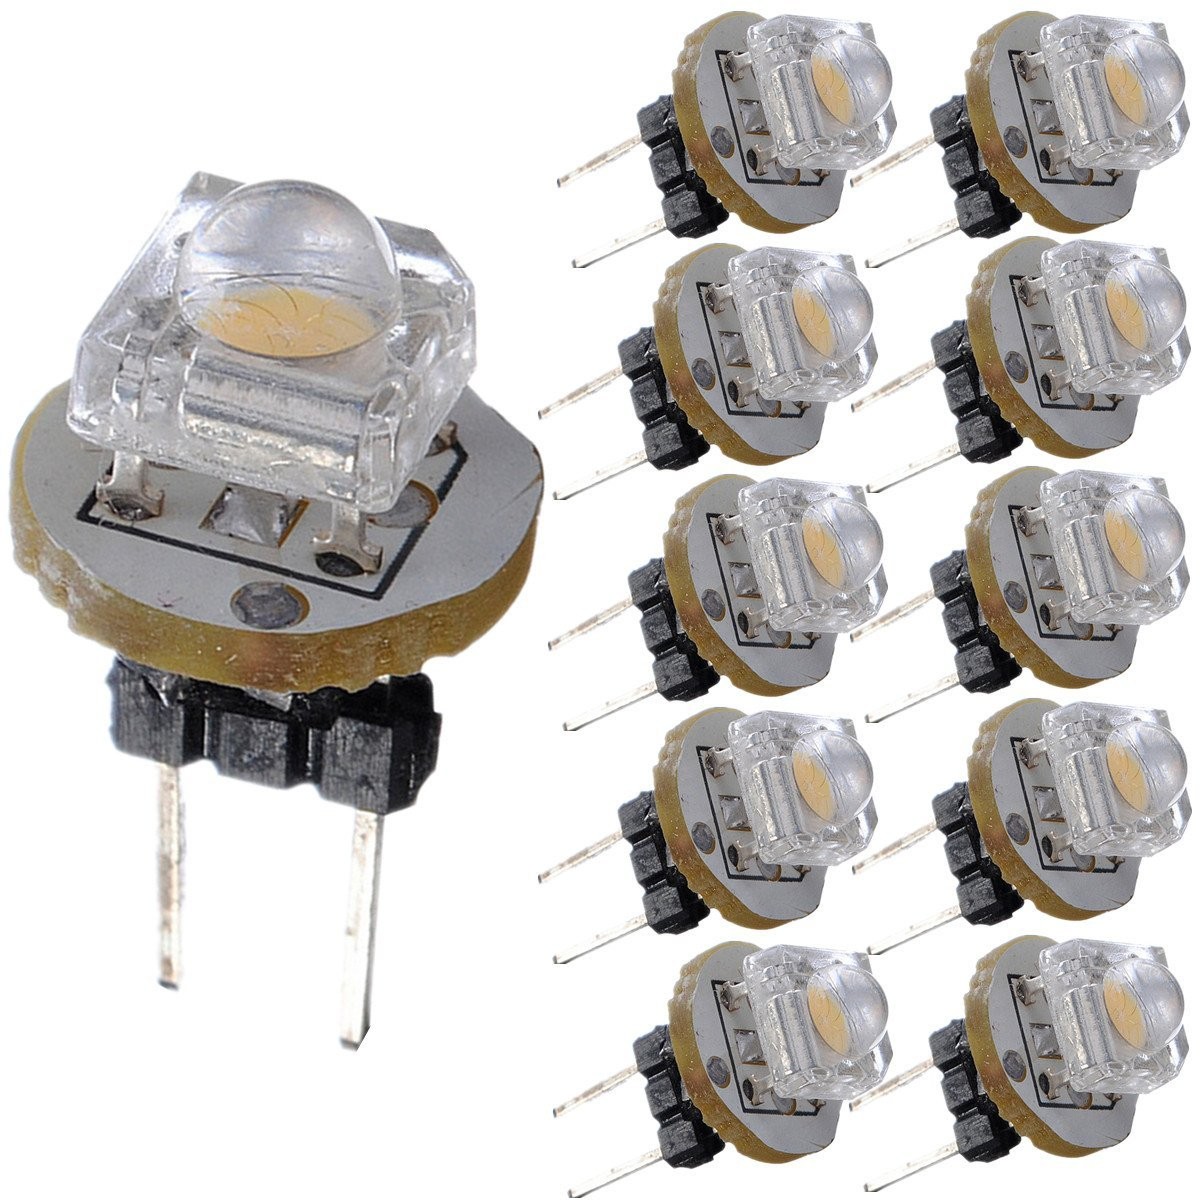 top 8 most popular 12 v 4 w bulbs ideas and get free